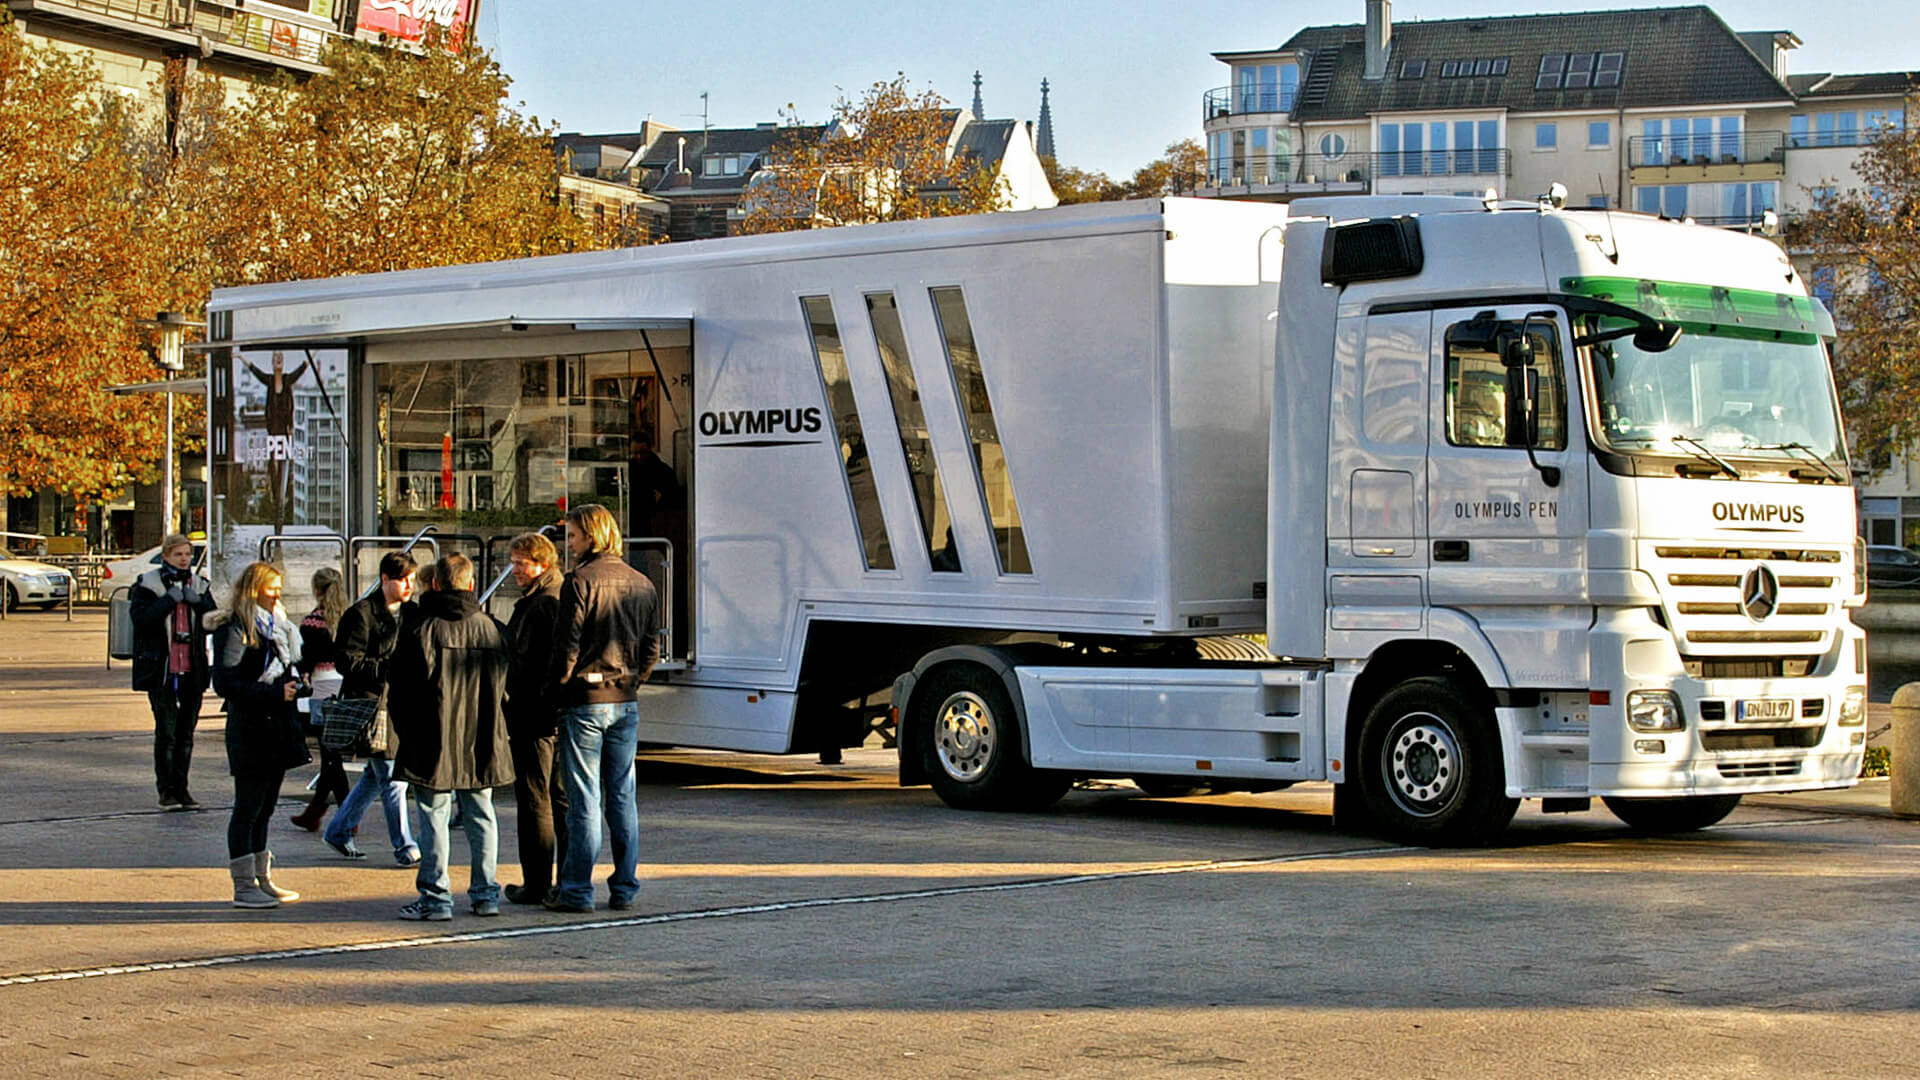 mobile-Events Roadshow Promotion mobiles-Marketing Infomobil Truck Showtruck